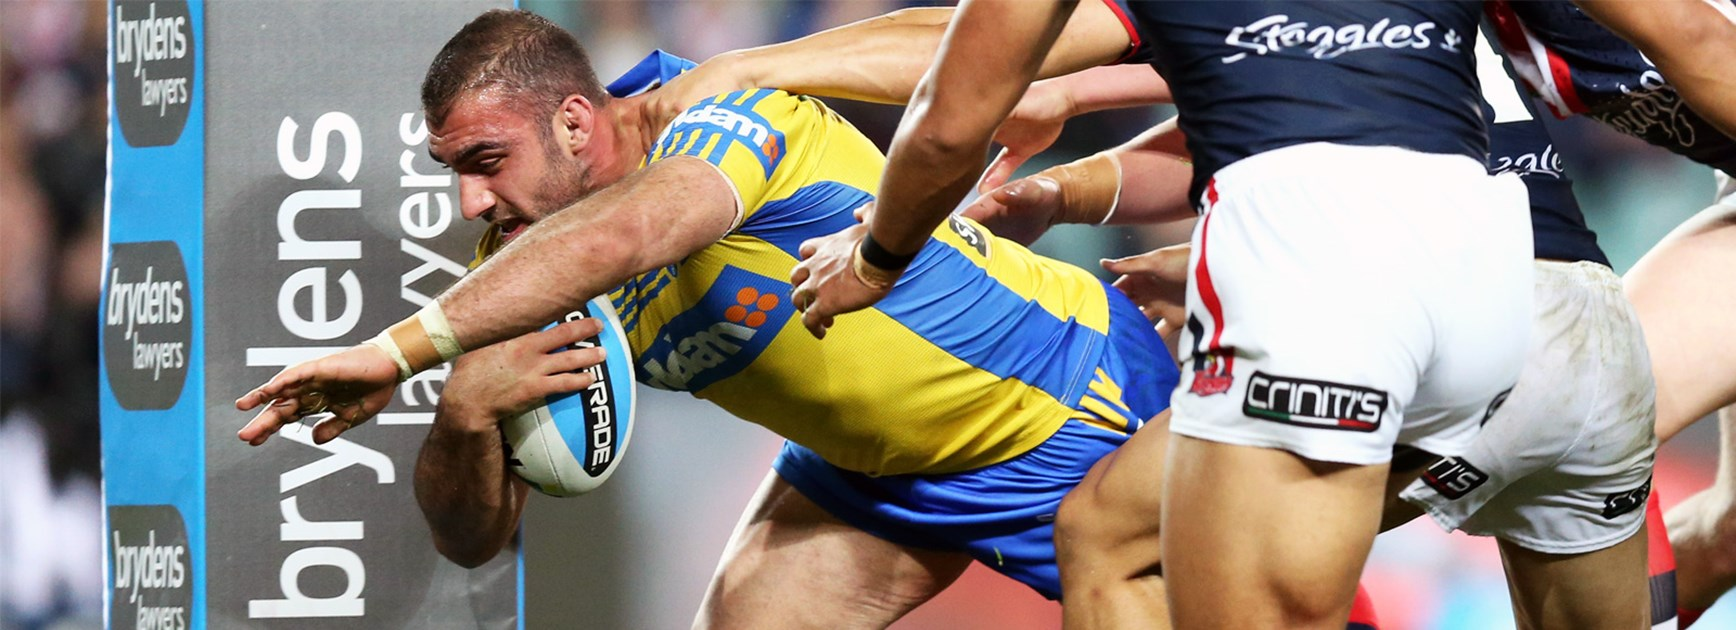 Tim Mannah was the unlikely first try-scorer for the Eels against the Roosters on Saturday night.